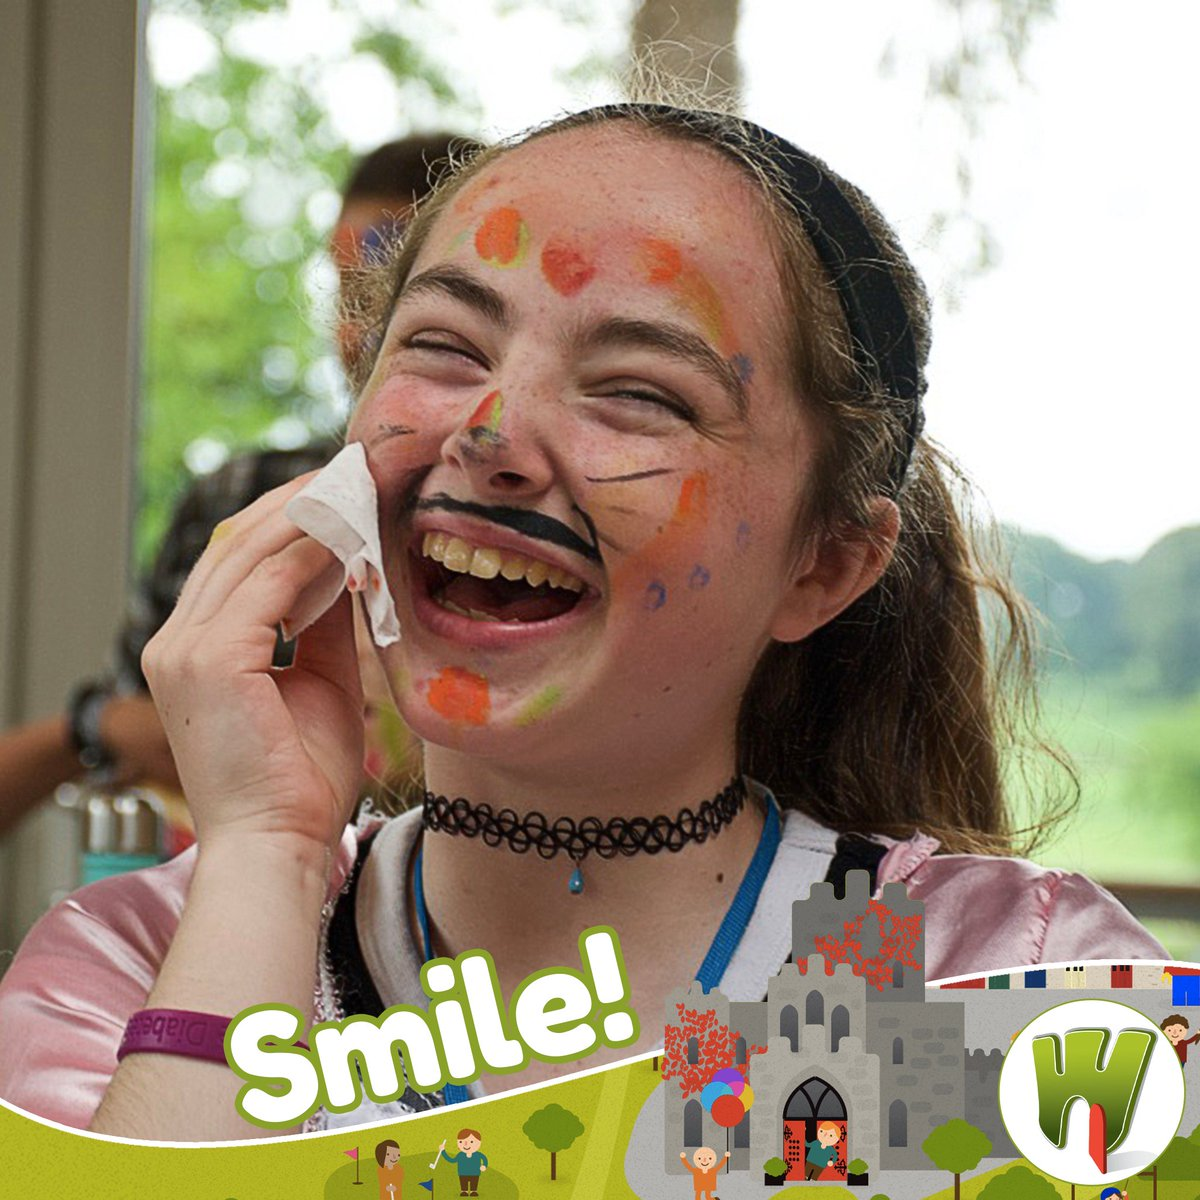 """""""All the statistics in the world can't measure the warmth of a smile.""""  #Barretstown #smile"""